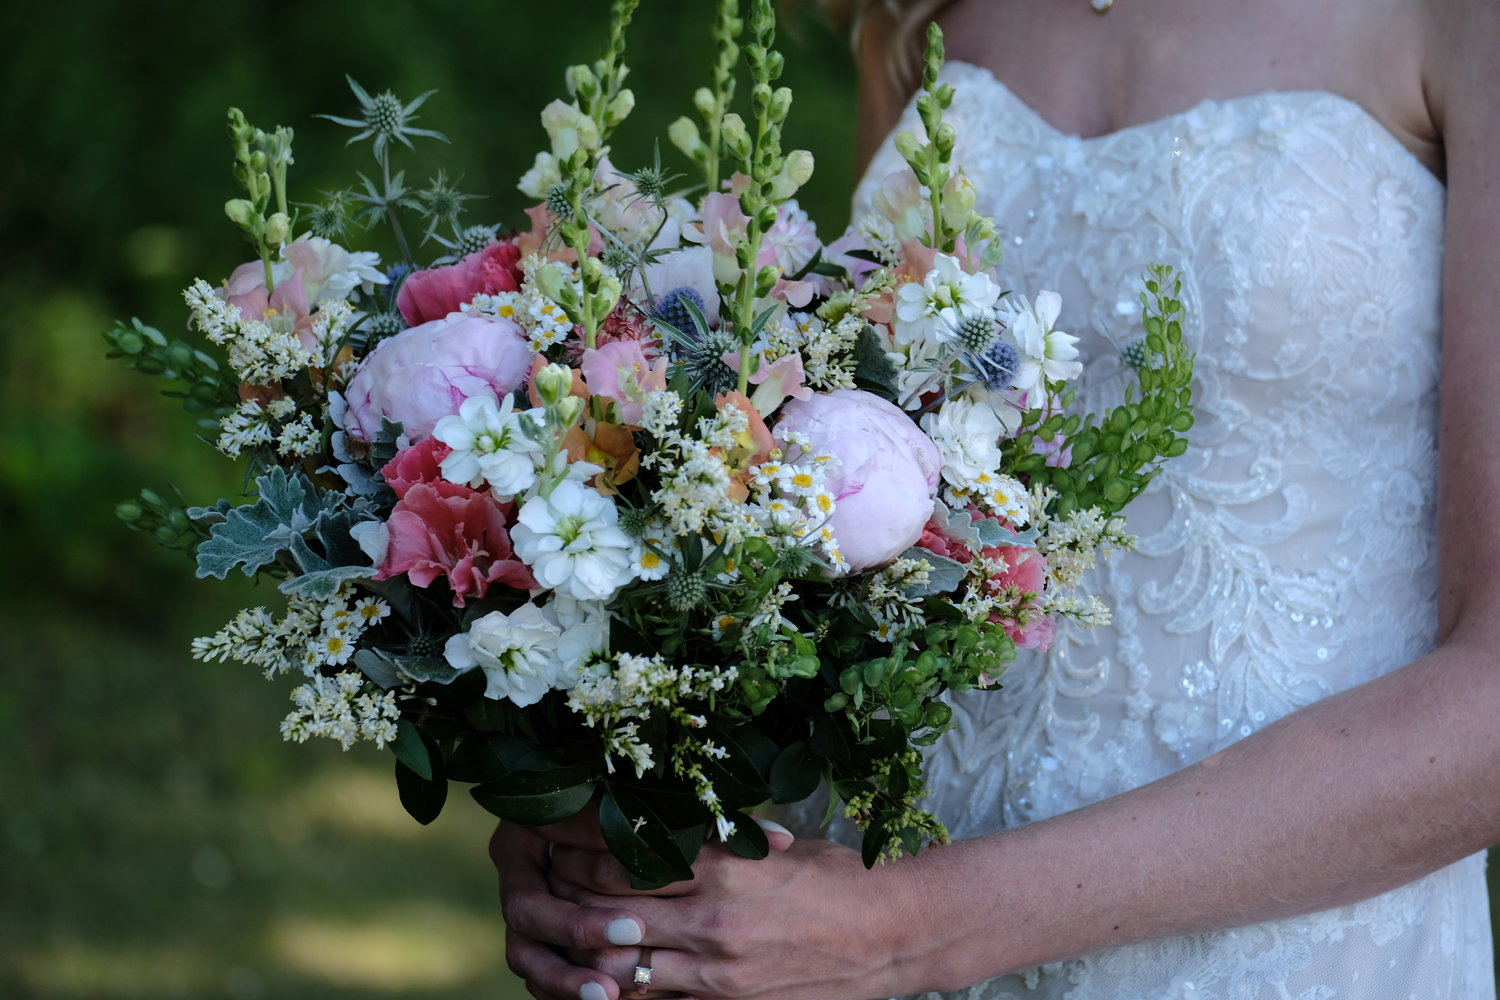 Diy Weddings And Events Stars Of The Meadow Flower Farm Local And Seasonal Flowers In Ny S Hudson Valley Upstate Ny Diy Weddings Wholesale